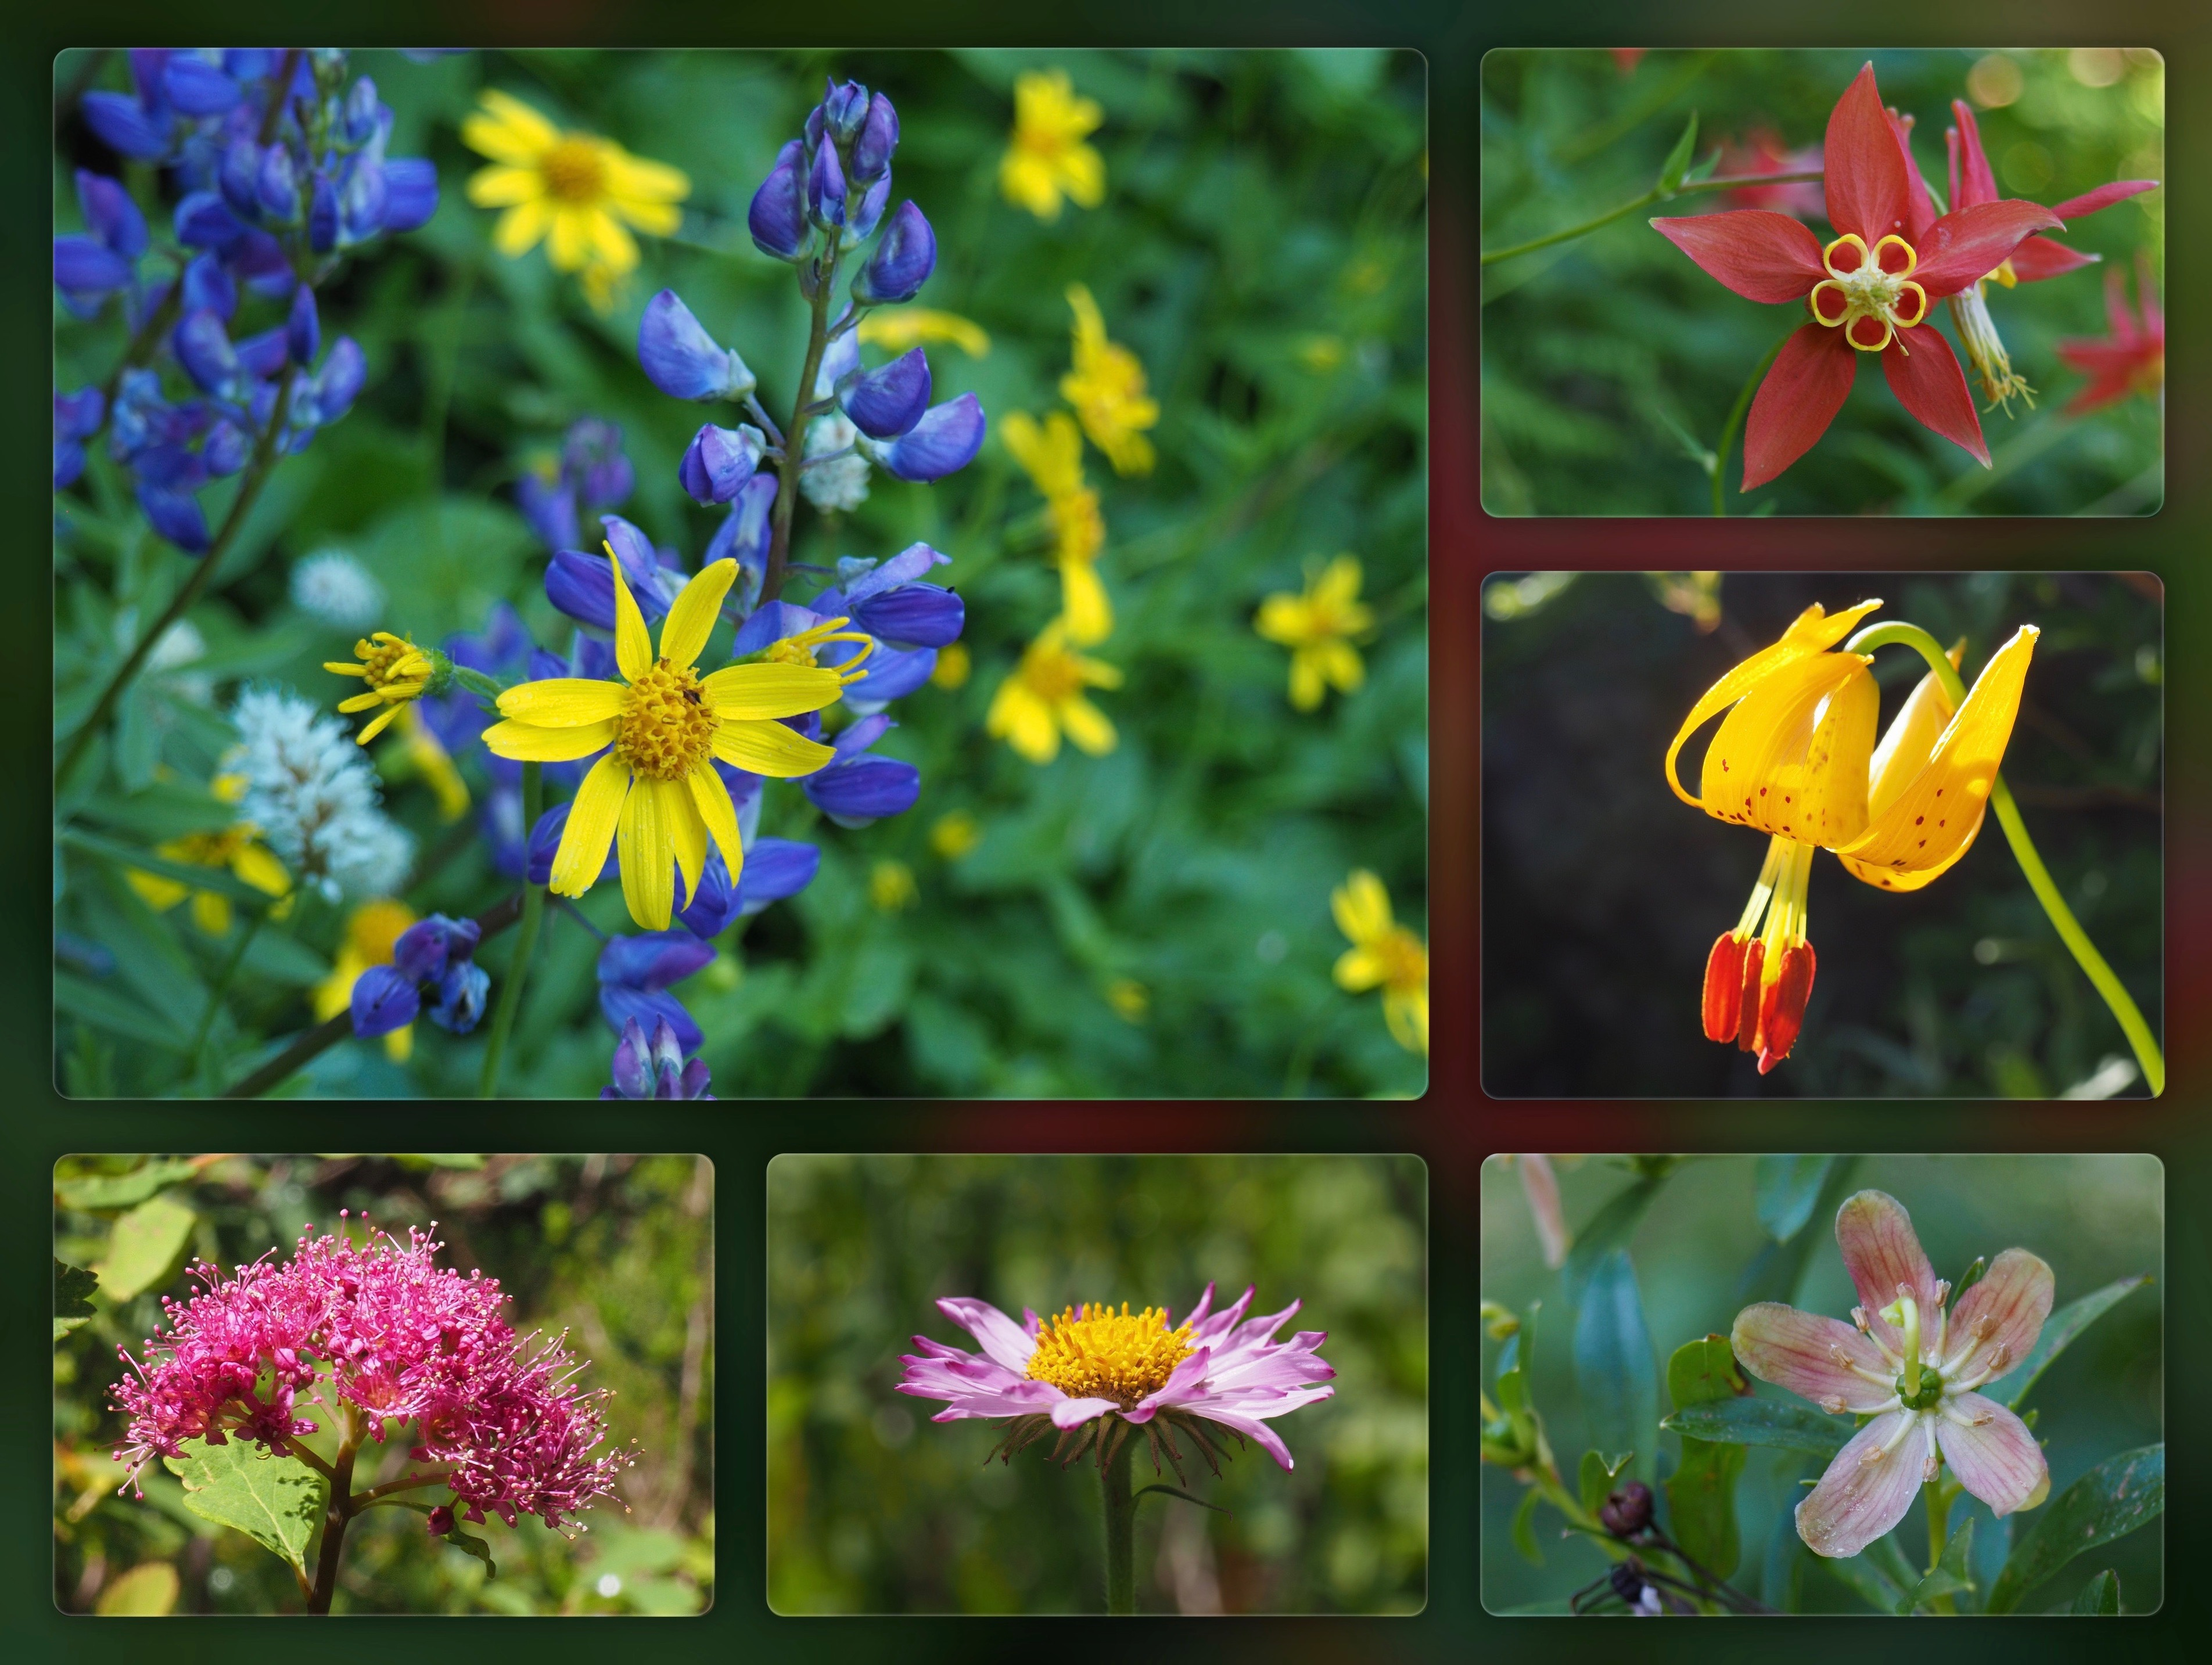 Throughout the boglands and along the woodland slopes, an array of summer wildflowers stipples the wayside. Clockwise from the top left, golden arnicas (Arnica sp.) and cobalt lupines (Lupinus sp.) join in complementary contrast; a western, or, Sitka columbine (Aquilegia formosa) reveals a honeycombed pinwheel; a Columbia lily (Lilium columbianum) nods into the brilliant sunshine; a copperbush (Elliottia pyroliflora) rears its elephantine pistil; a subalpine fleabane (Erigeron glacialis) unfurls its petals sunward; and a rosy spirea (Spiraea splendens) lofts a sweetly scented nosegay. Walt Bailey Trail, July 24, 2016.